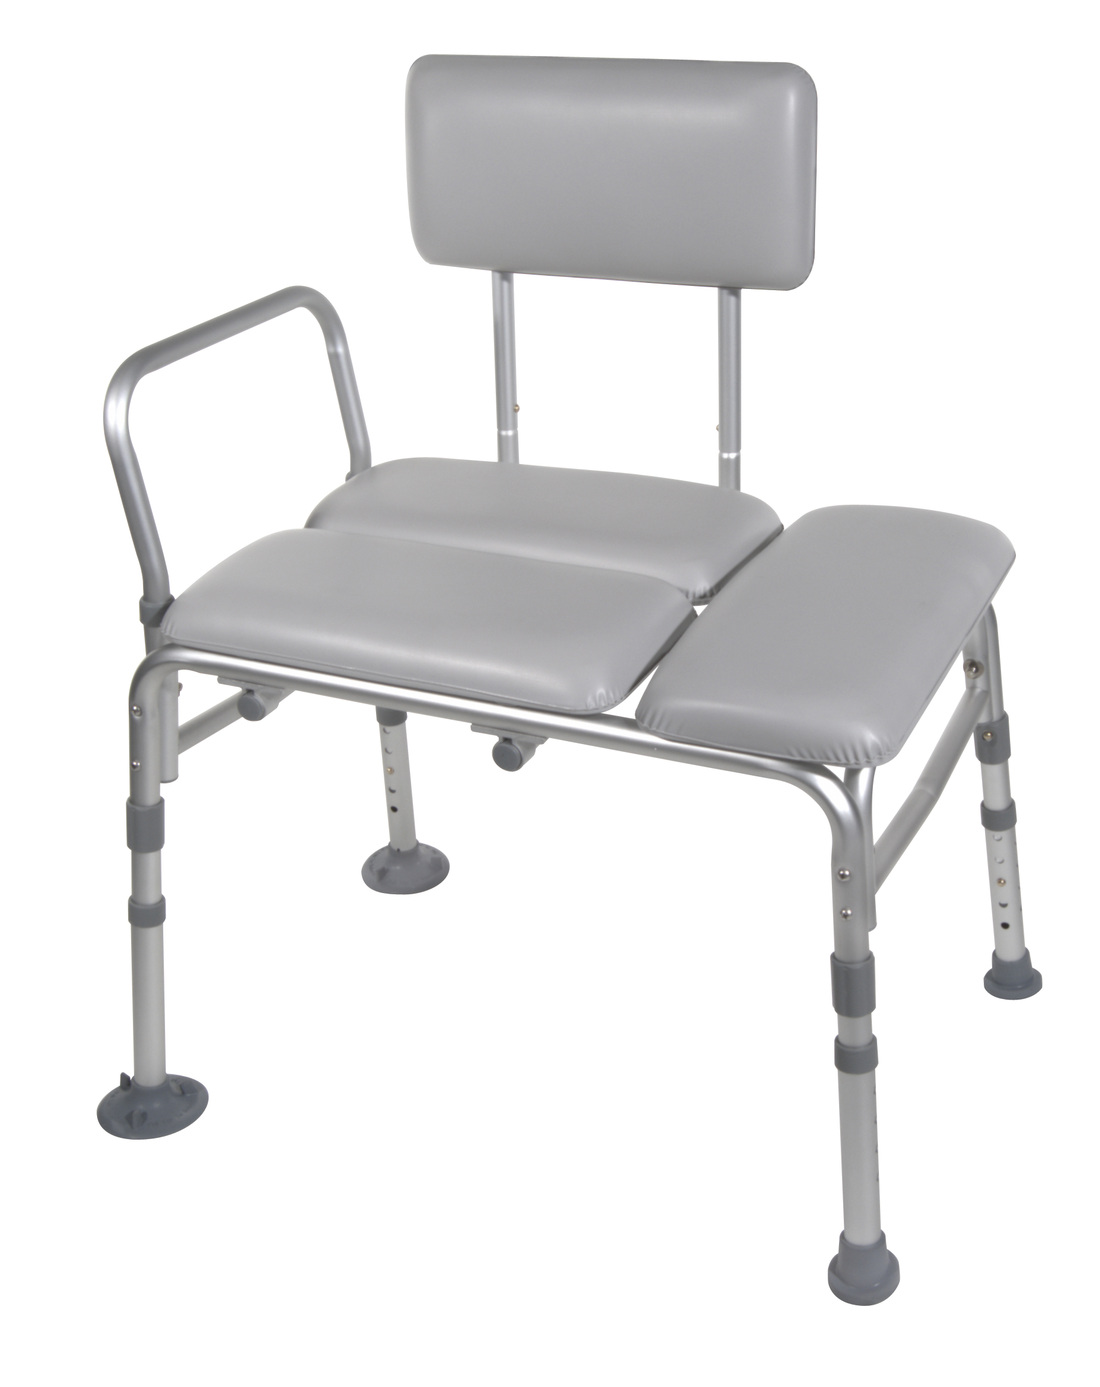 transfer shower chairs for elderly ergonomic drafting chair with arms special needs bath tubs